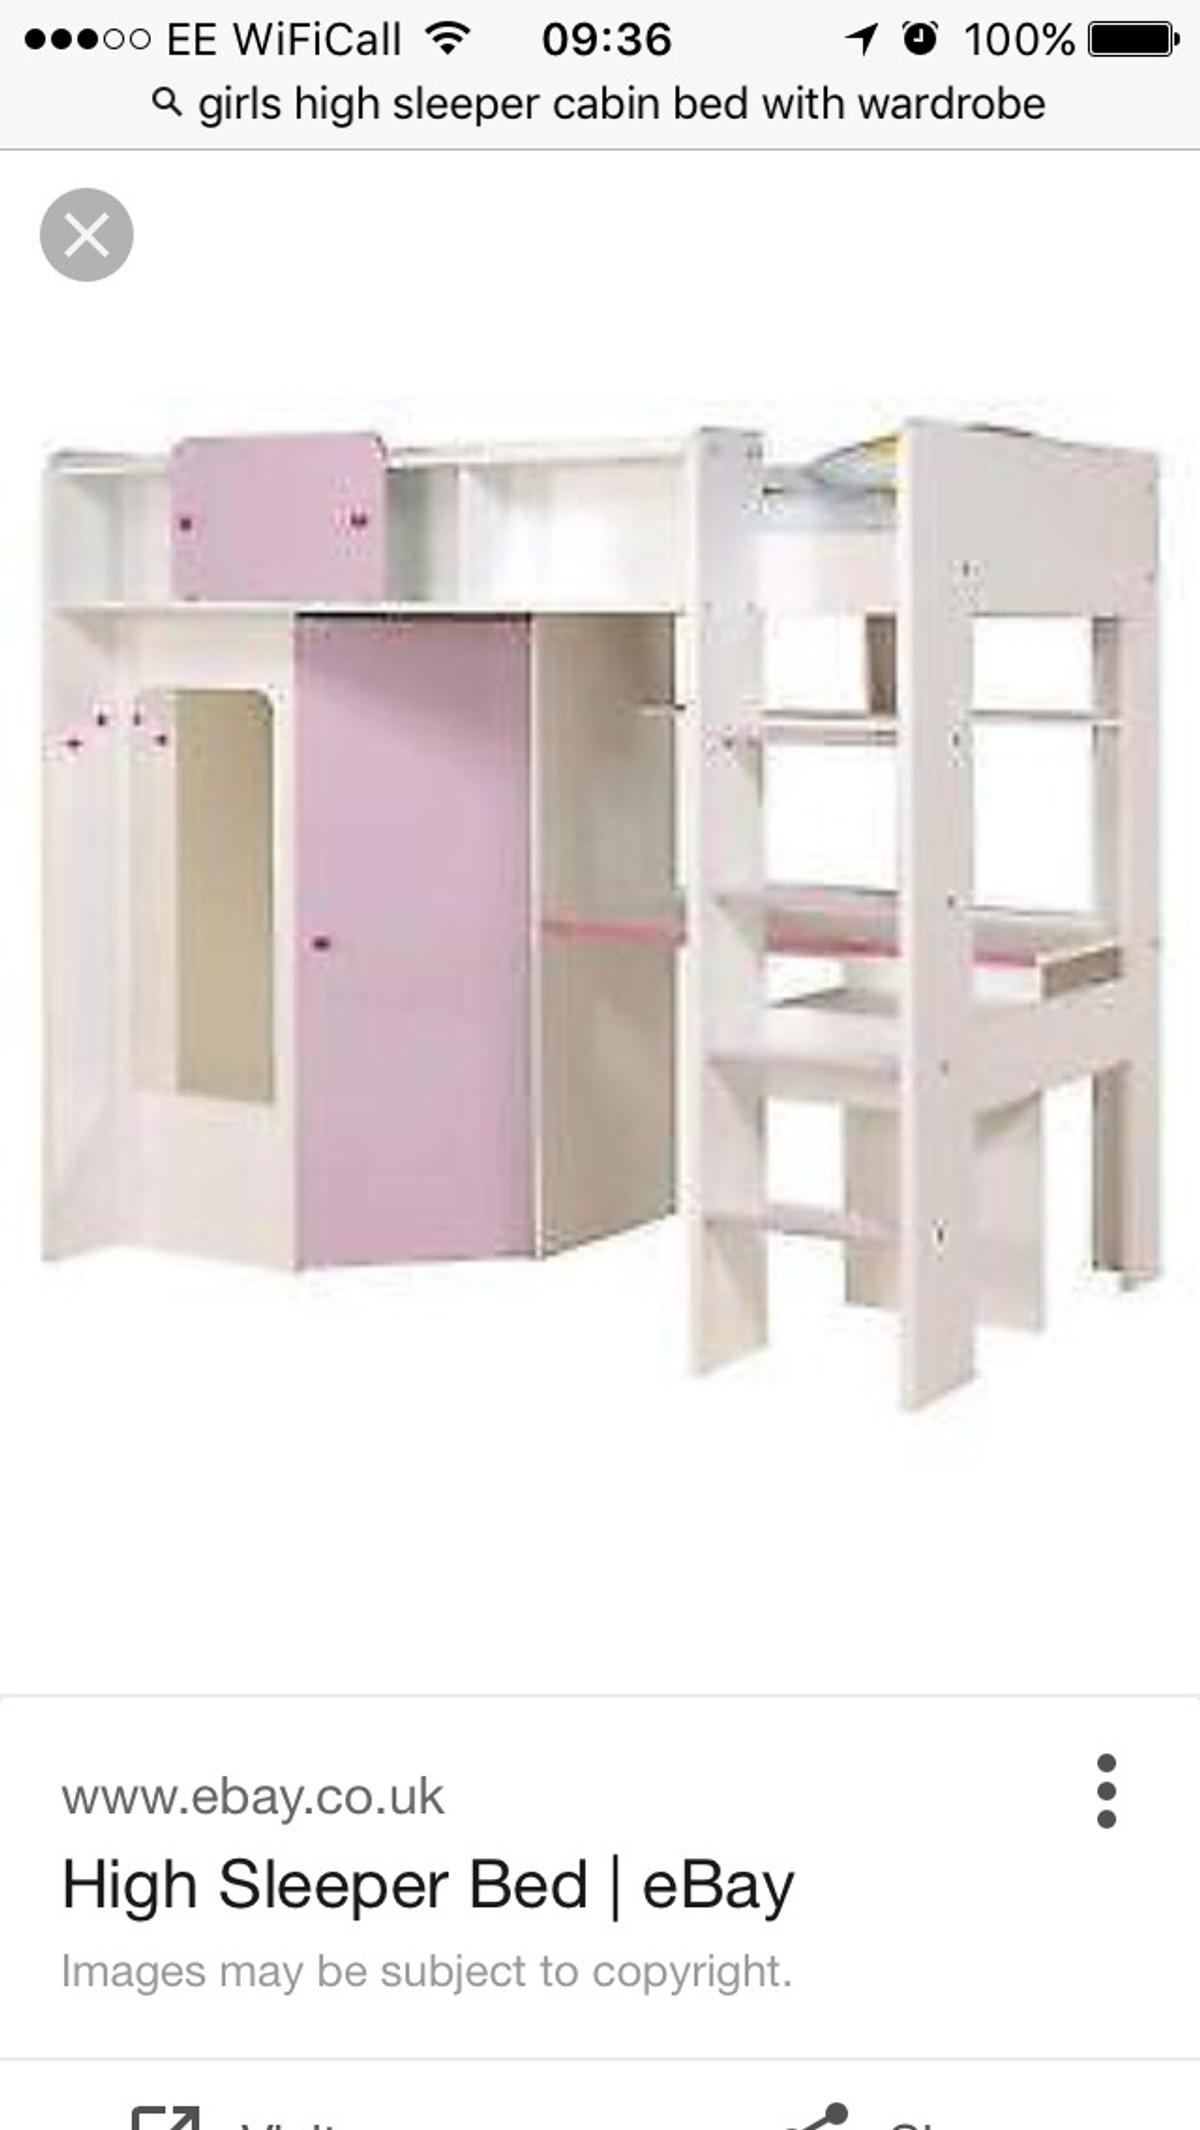 Picture of: Girls High Sleeper Cabin Bed In De55 Alfreton For 50 00 For Sale Shpock